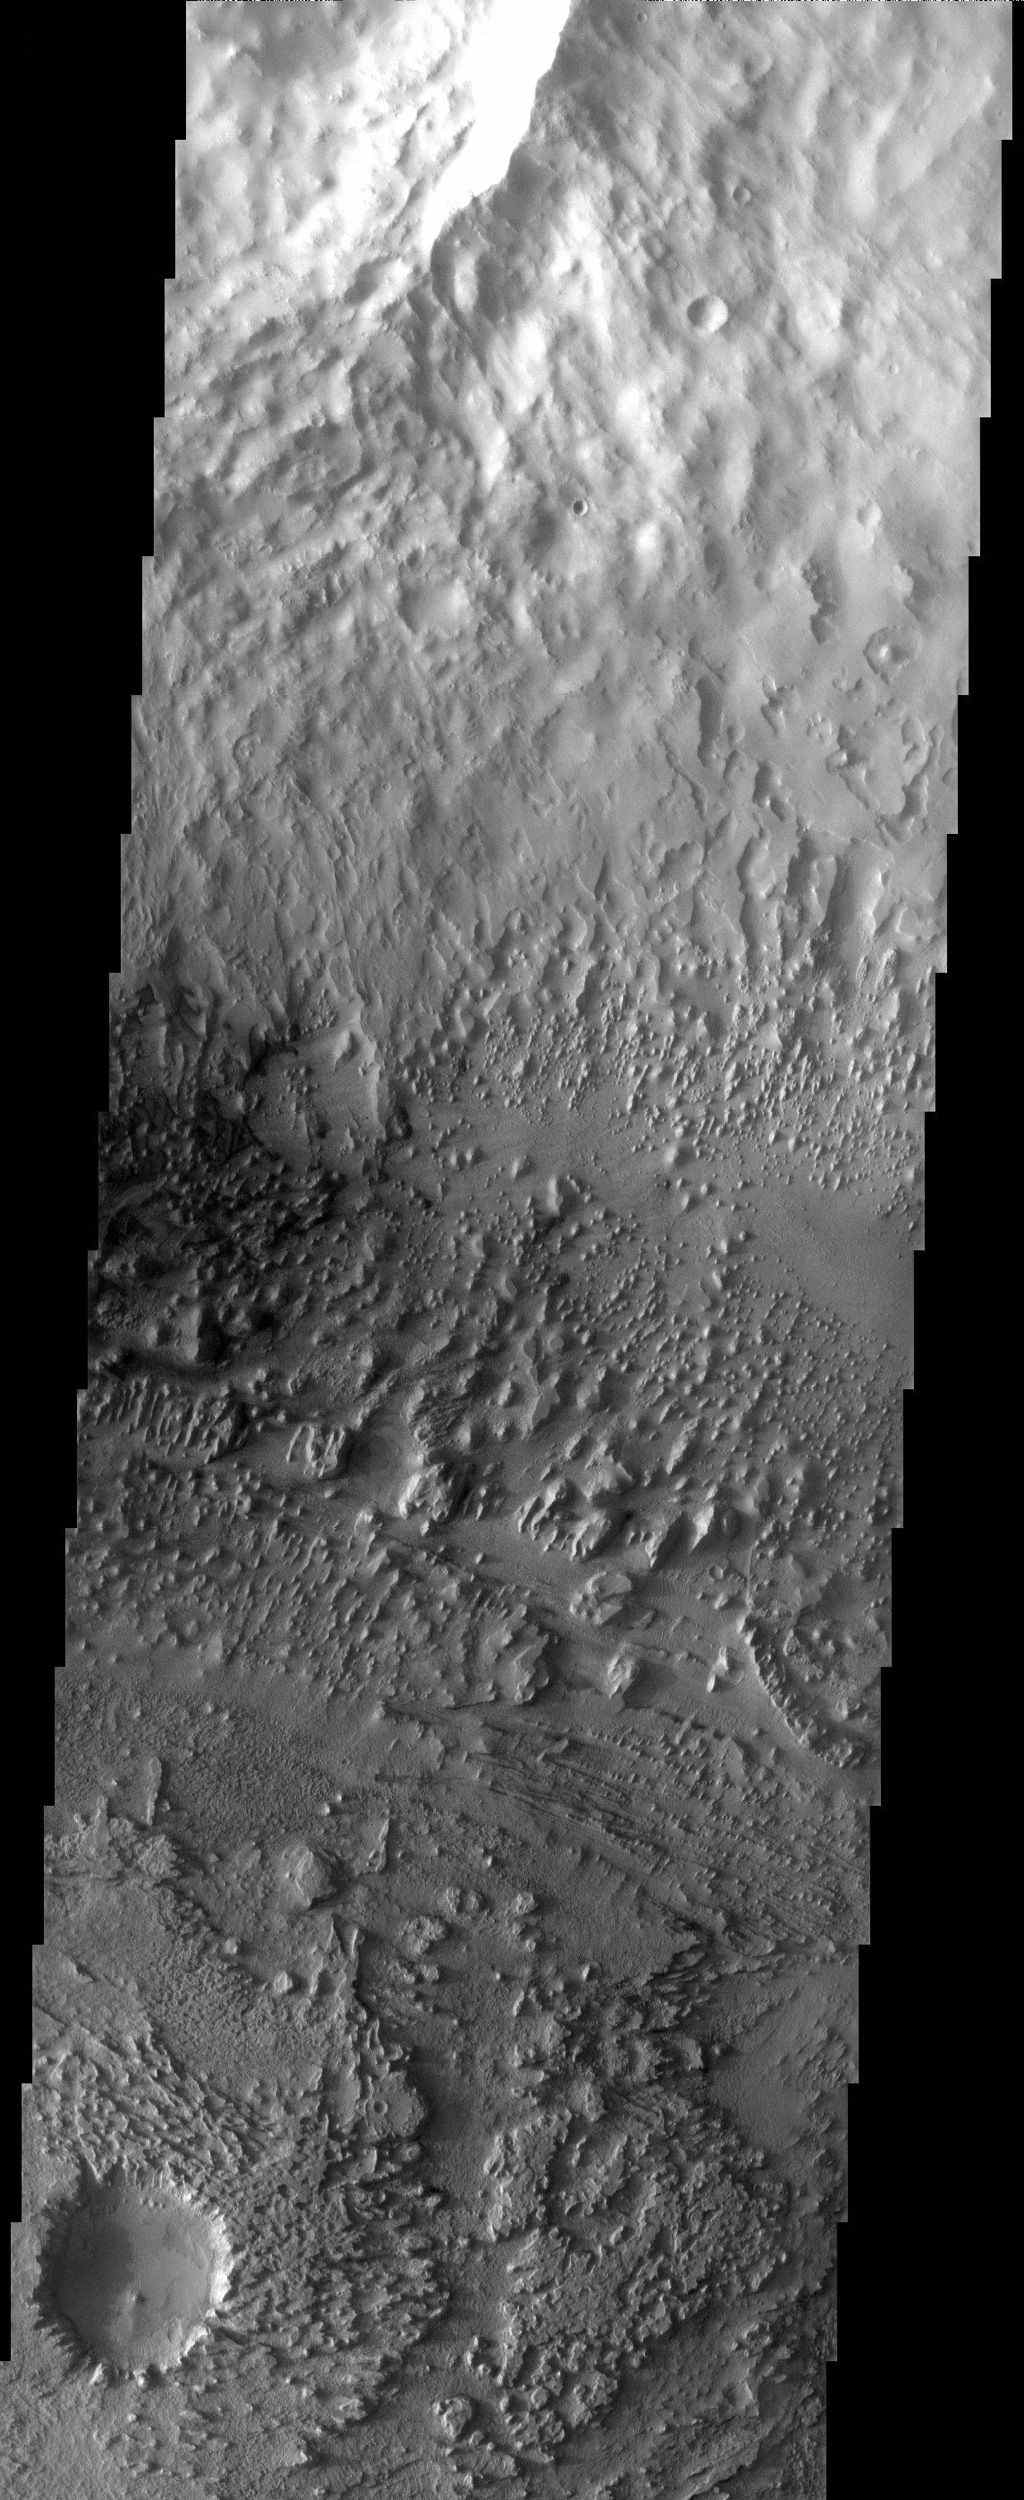 Streamlined buttes and mesas are left as remnants of an erosive wind that has carried away sediments and even the rim of a small crater in this image from NASA's Mars Odyssey spacecraft.